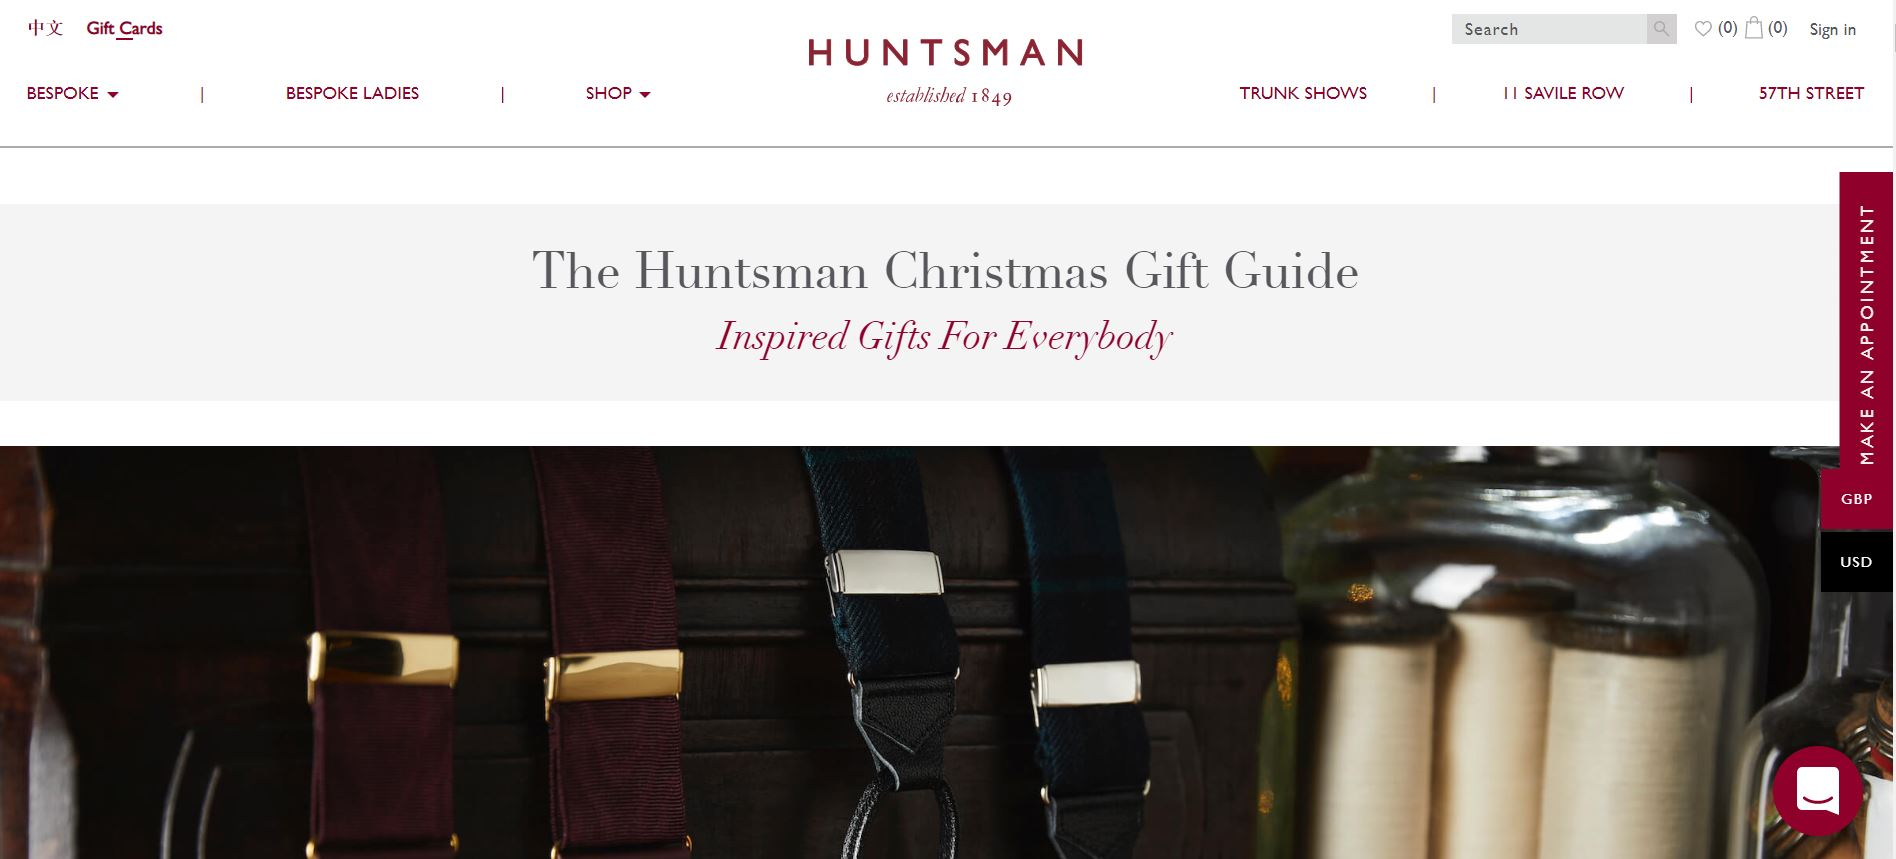 Christmas Gift Guide Page on Hunstman's Website